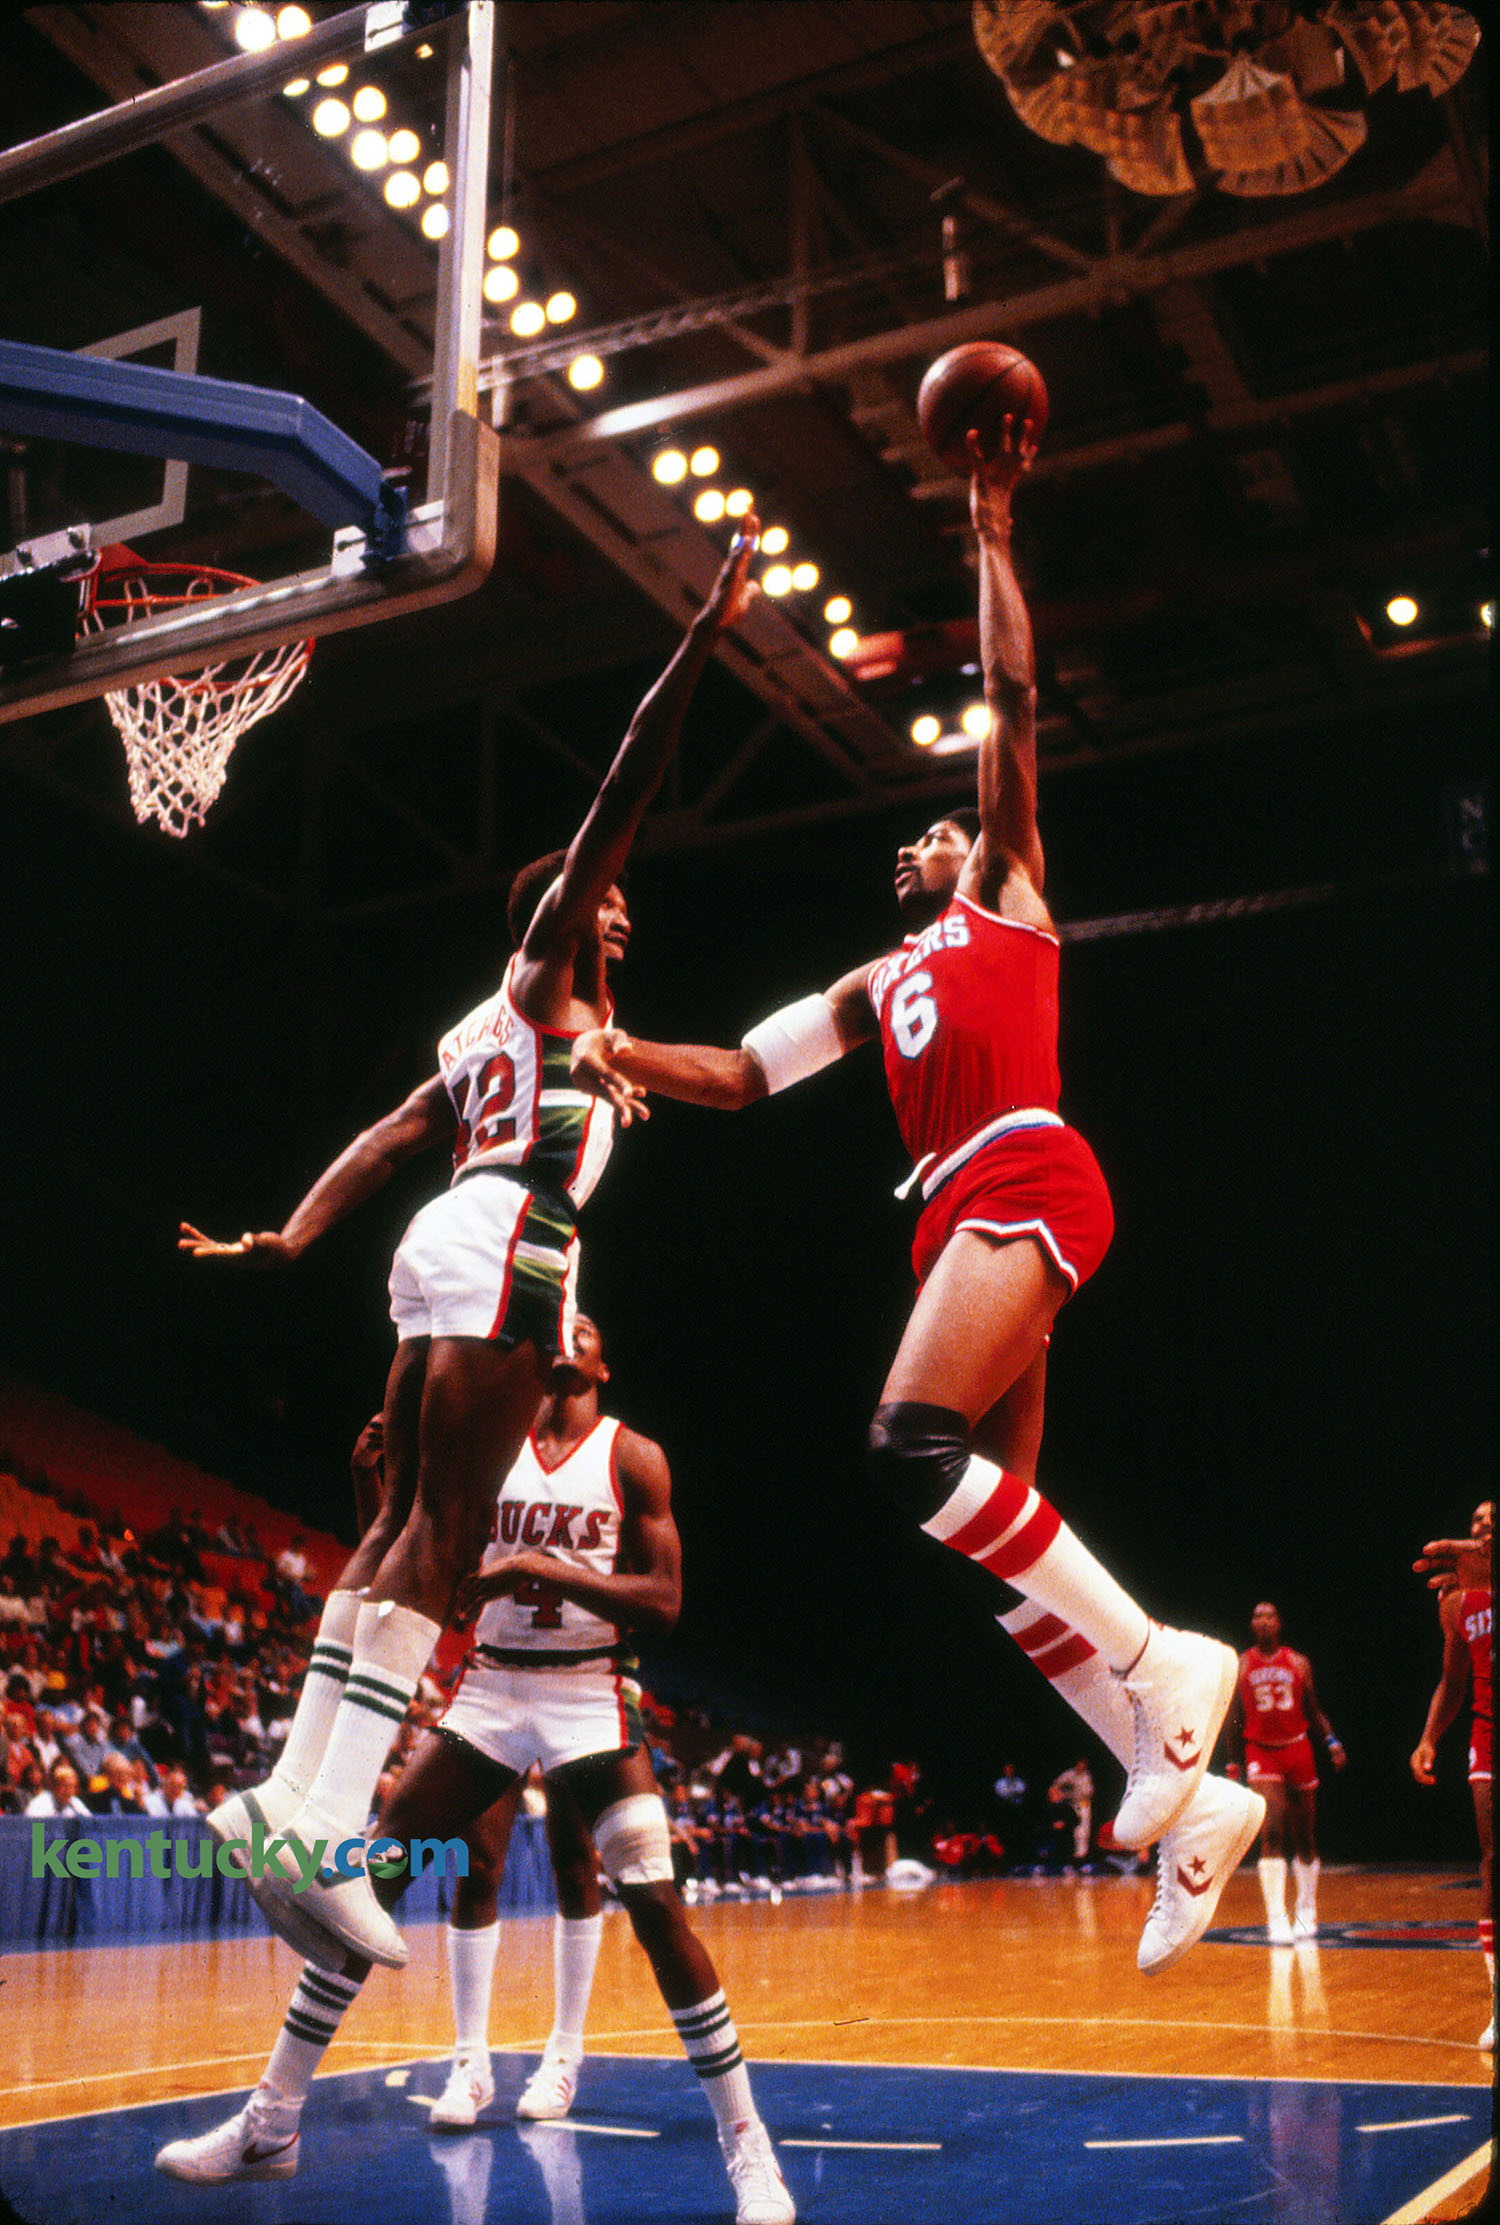 Julius Erving in NBA exhibition game at Rupp Arena 1980